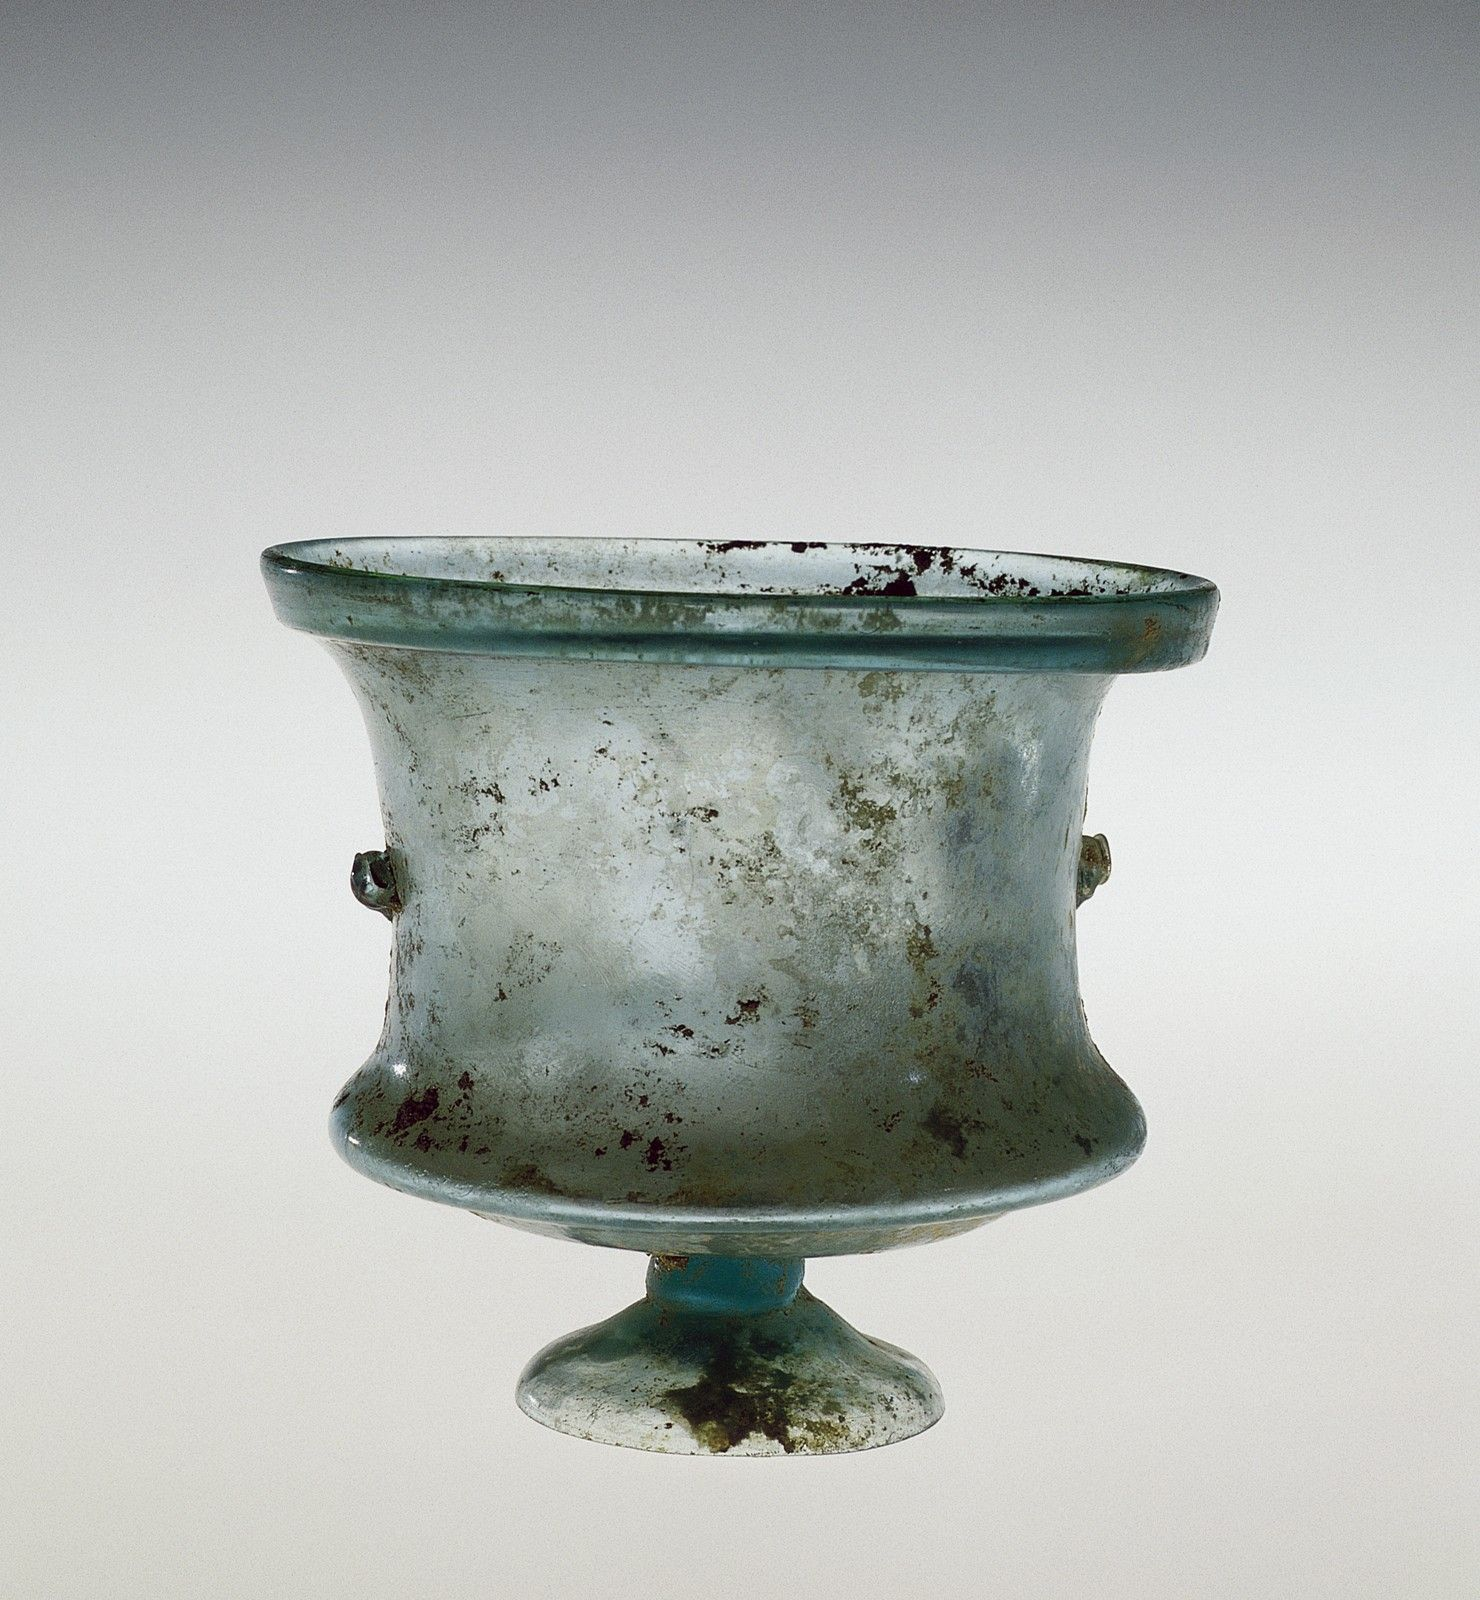 Roman Glass Cup or Mixing Bowl, 50100 Corning Museum